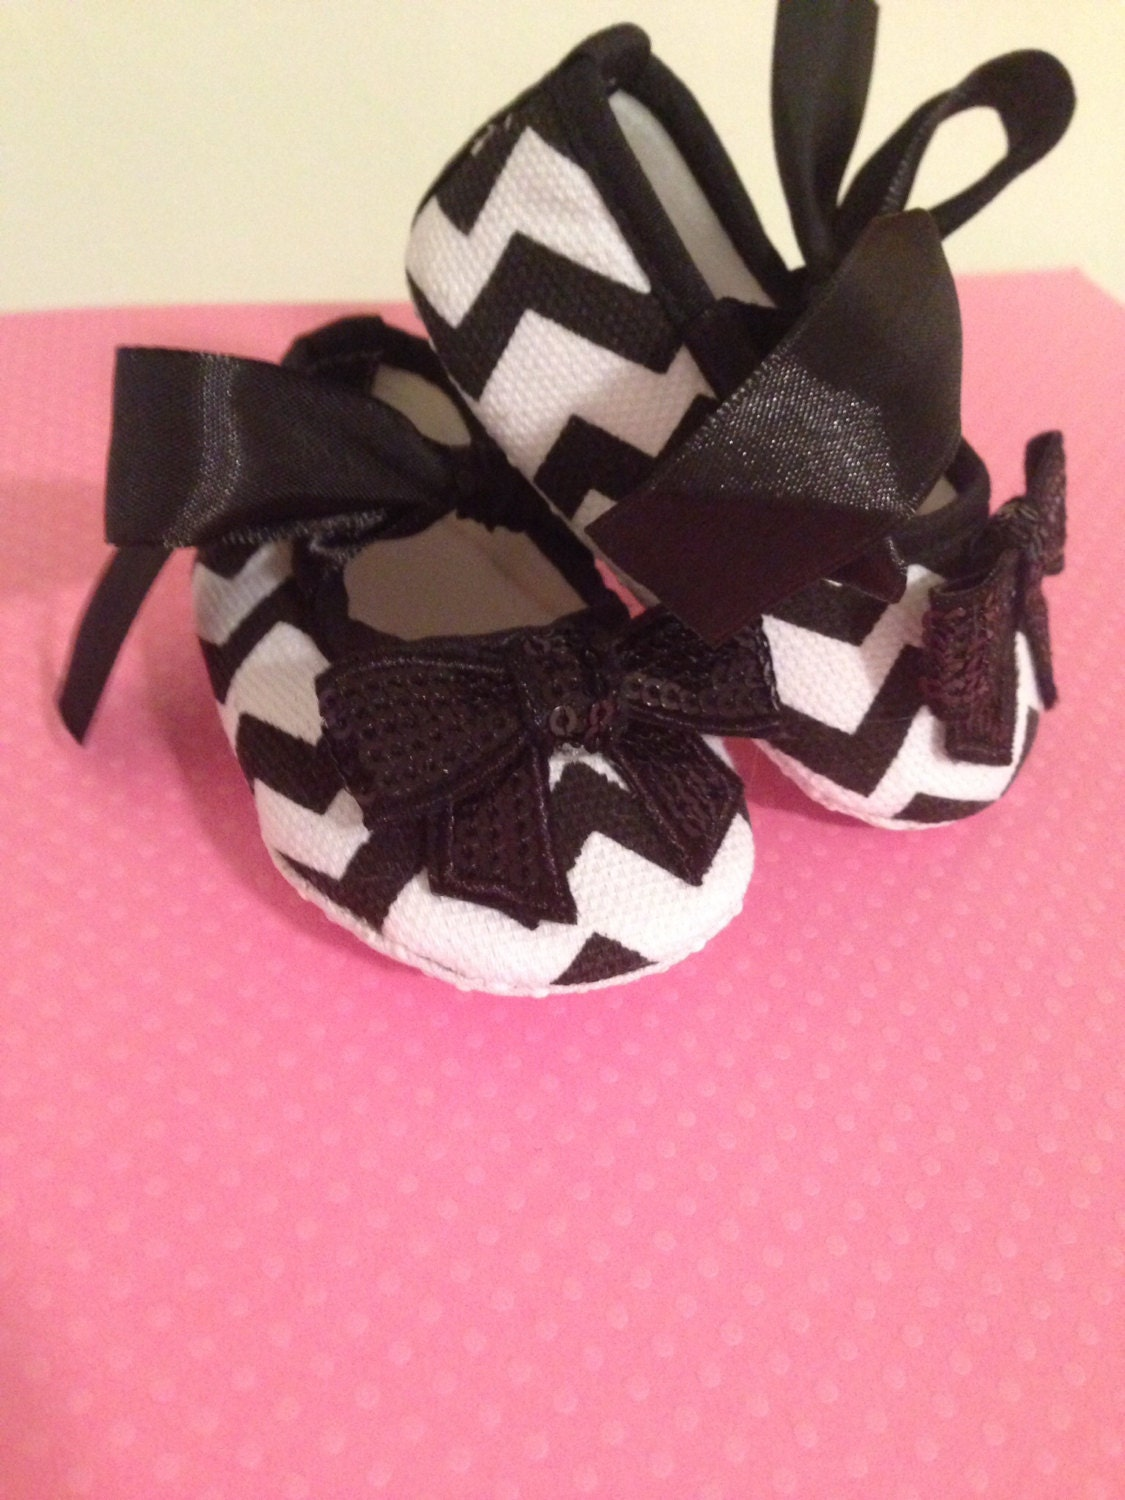 black and white chevron pattern infant baby crib shoes with